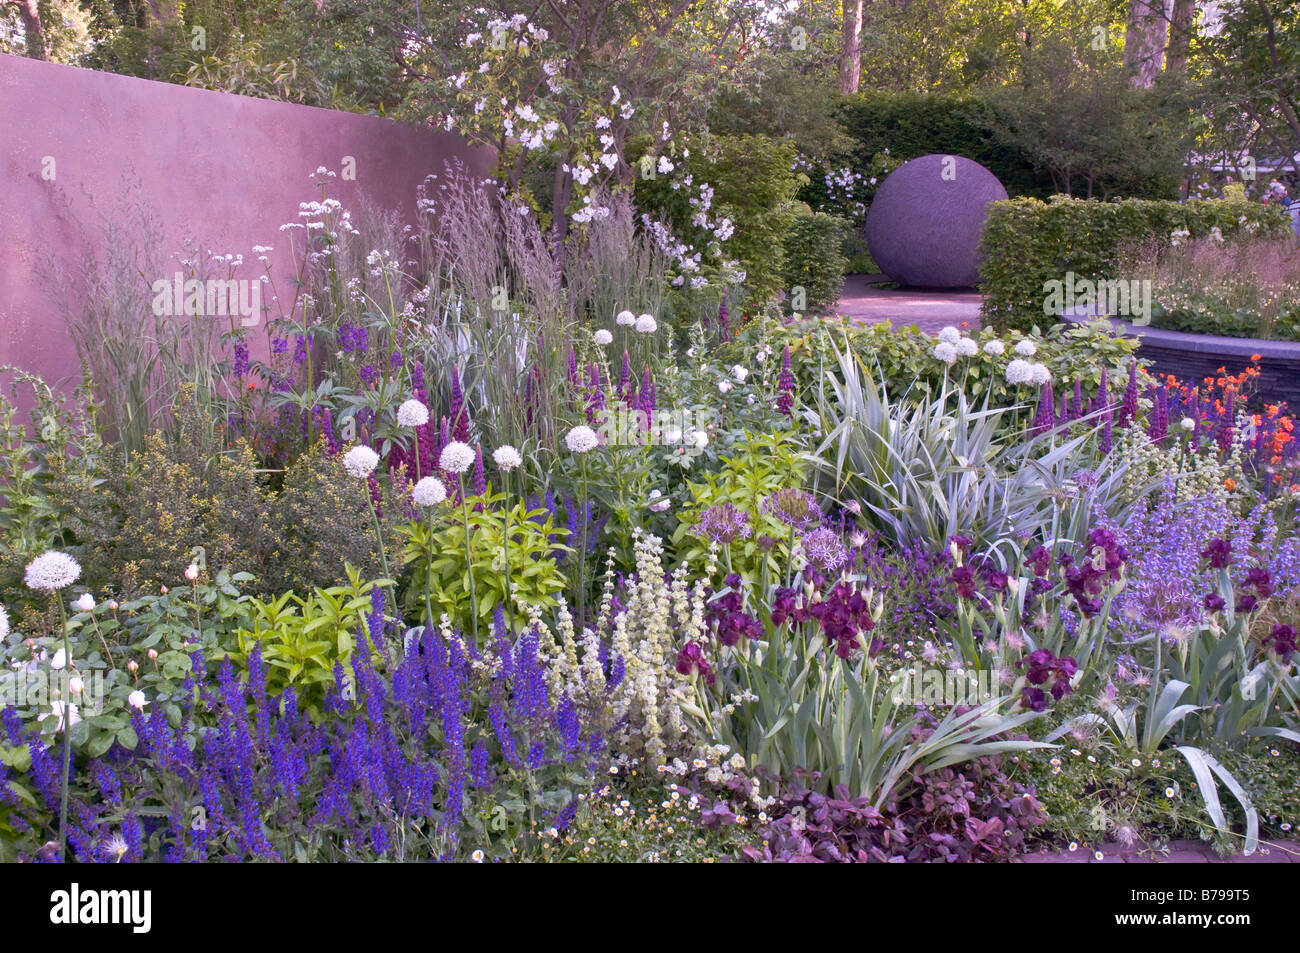 RHS Chelsea Flower Show 2008 The Bupa Garden Stock Royalty Free Image